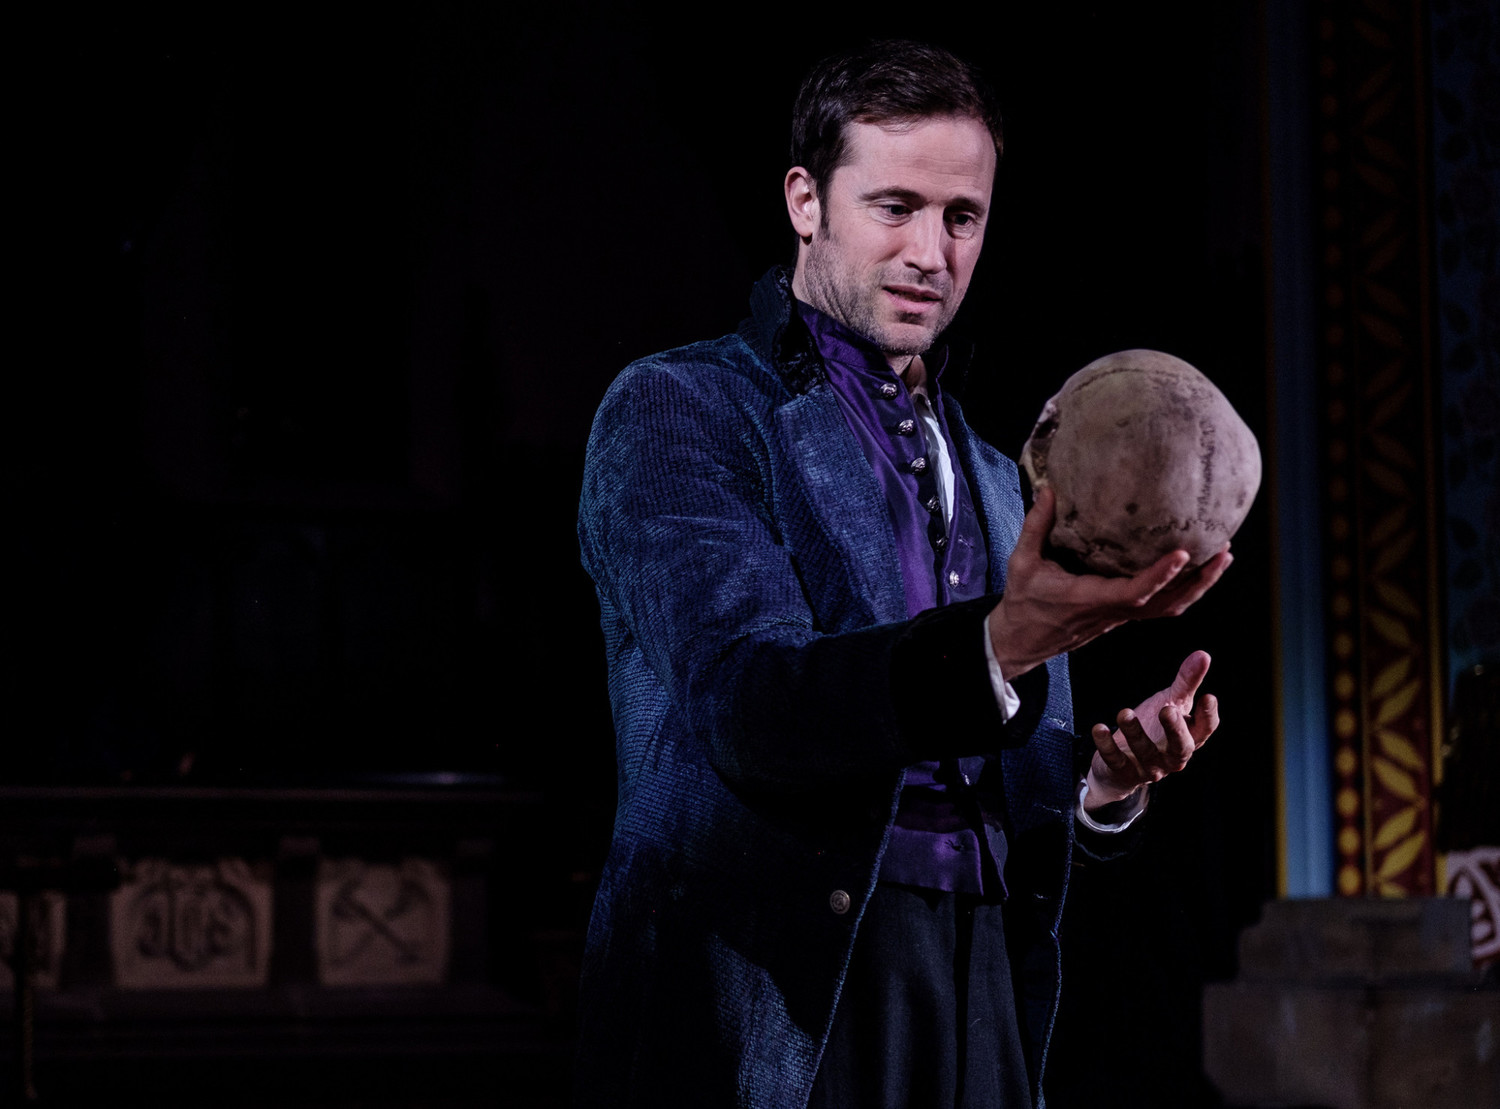 BWW Review: Jersey City's Grace Church turns into Elsinore for HAMLET by Shakespeare@